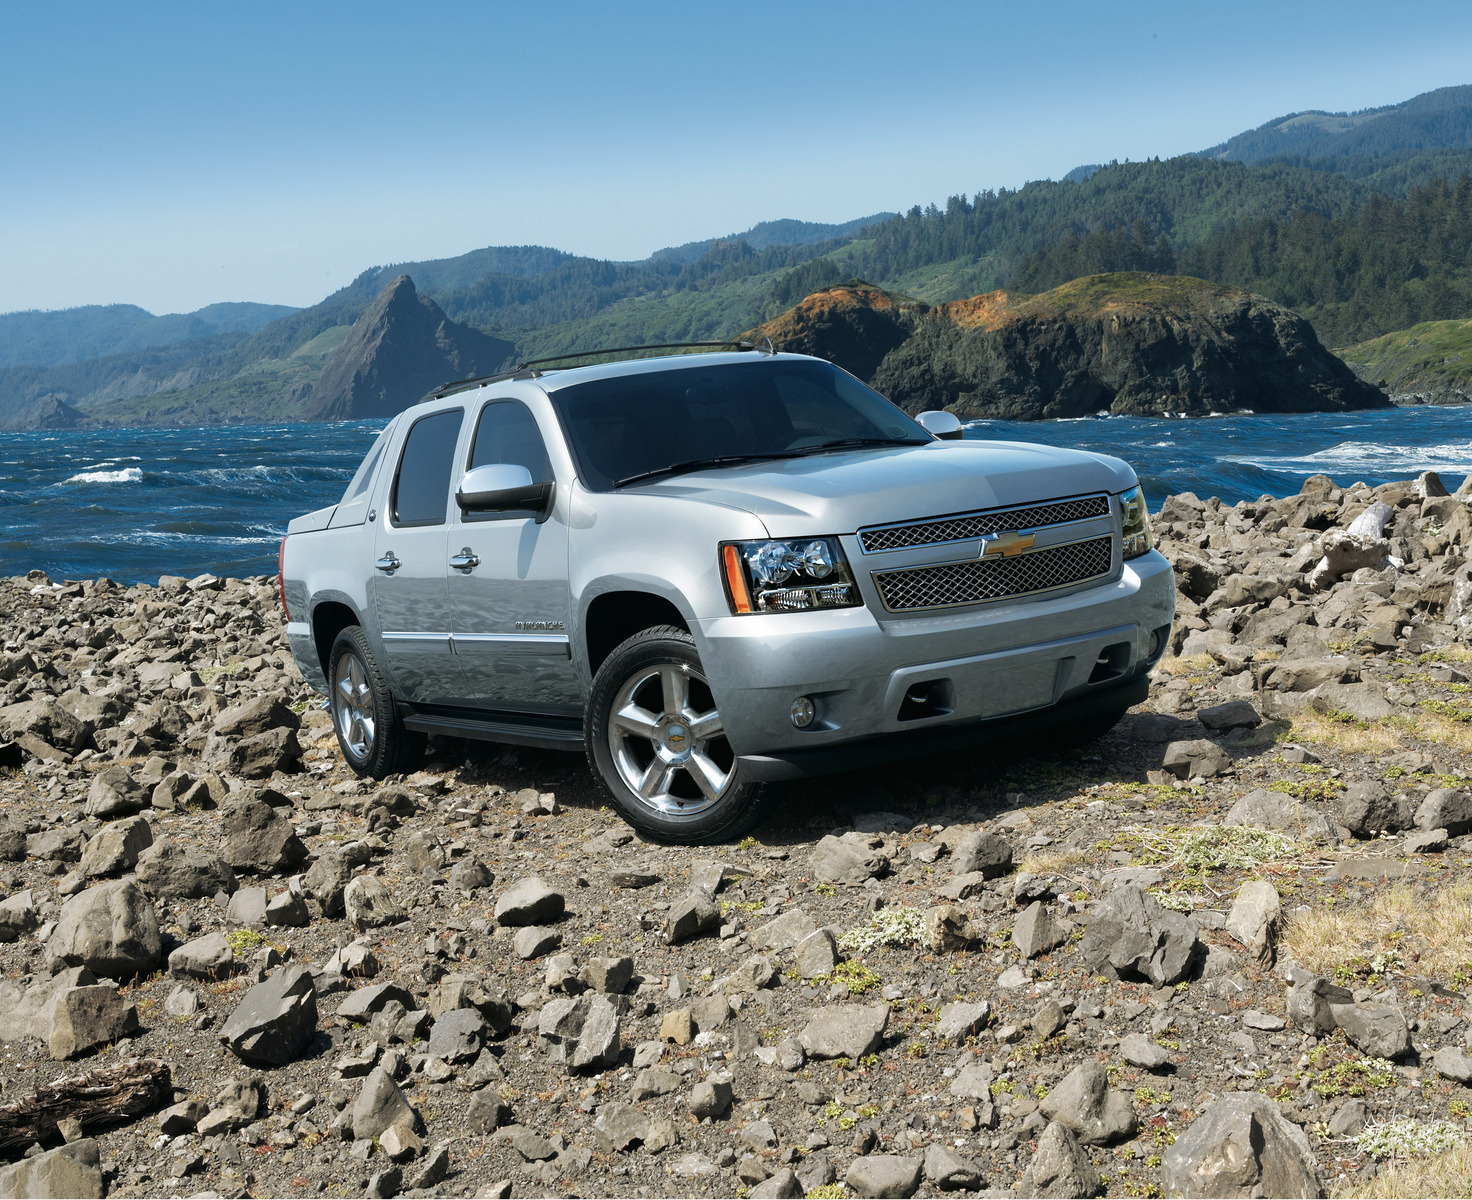 escalade vehicles replace cadillac platinum mods com esv